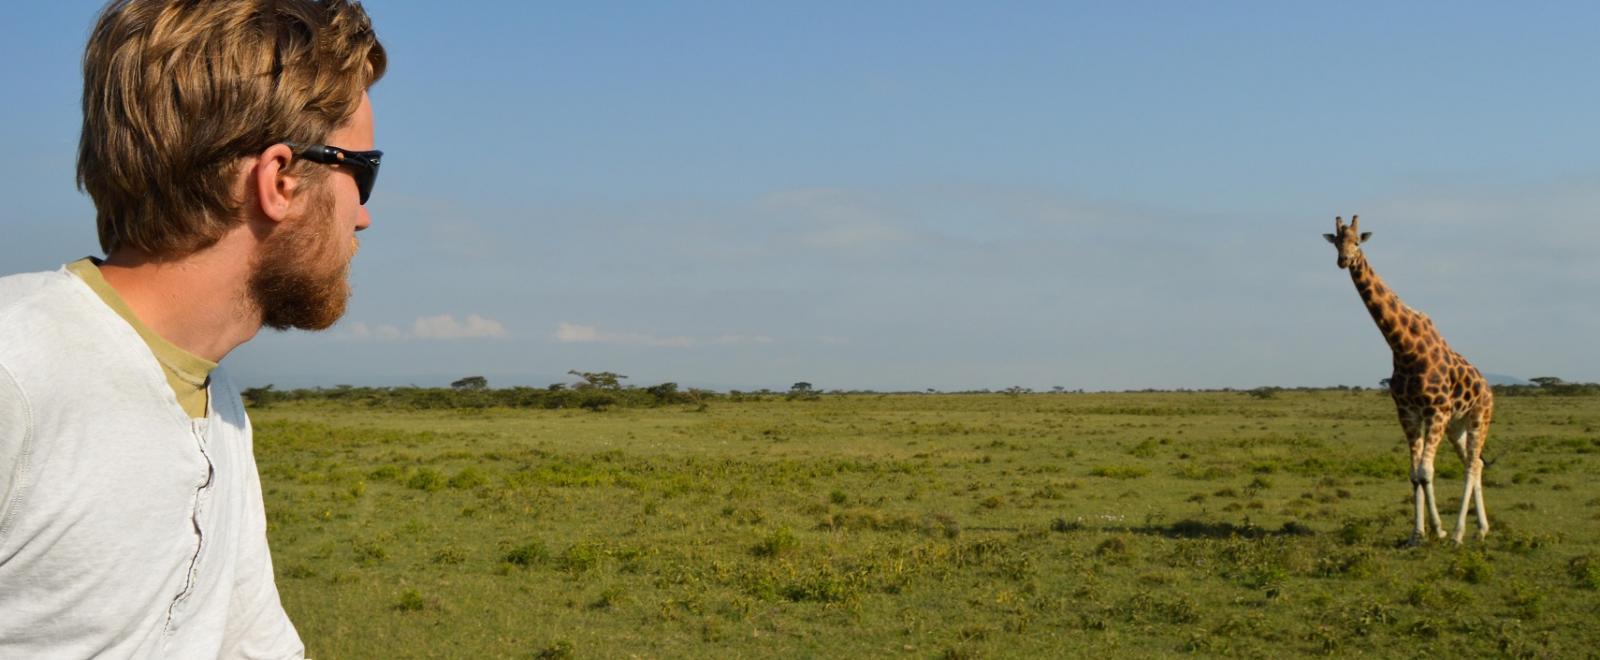 Projects Abroad volunteer gathers data on Giraffes in Kenya